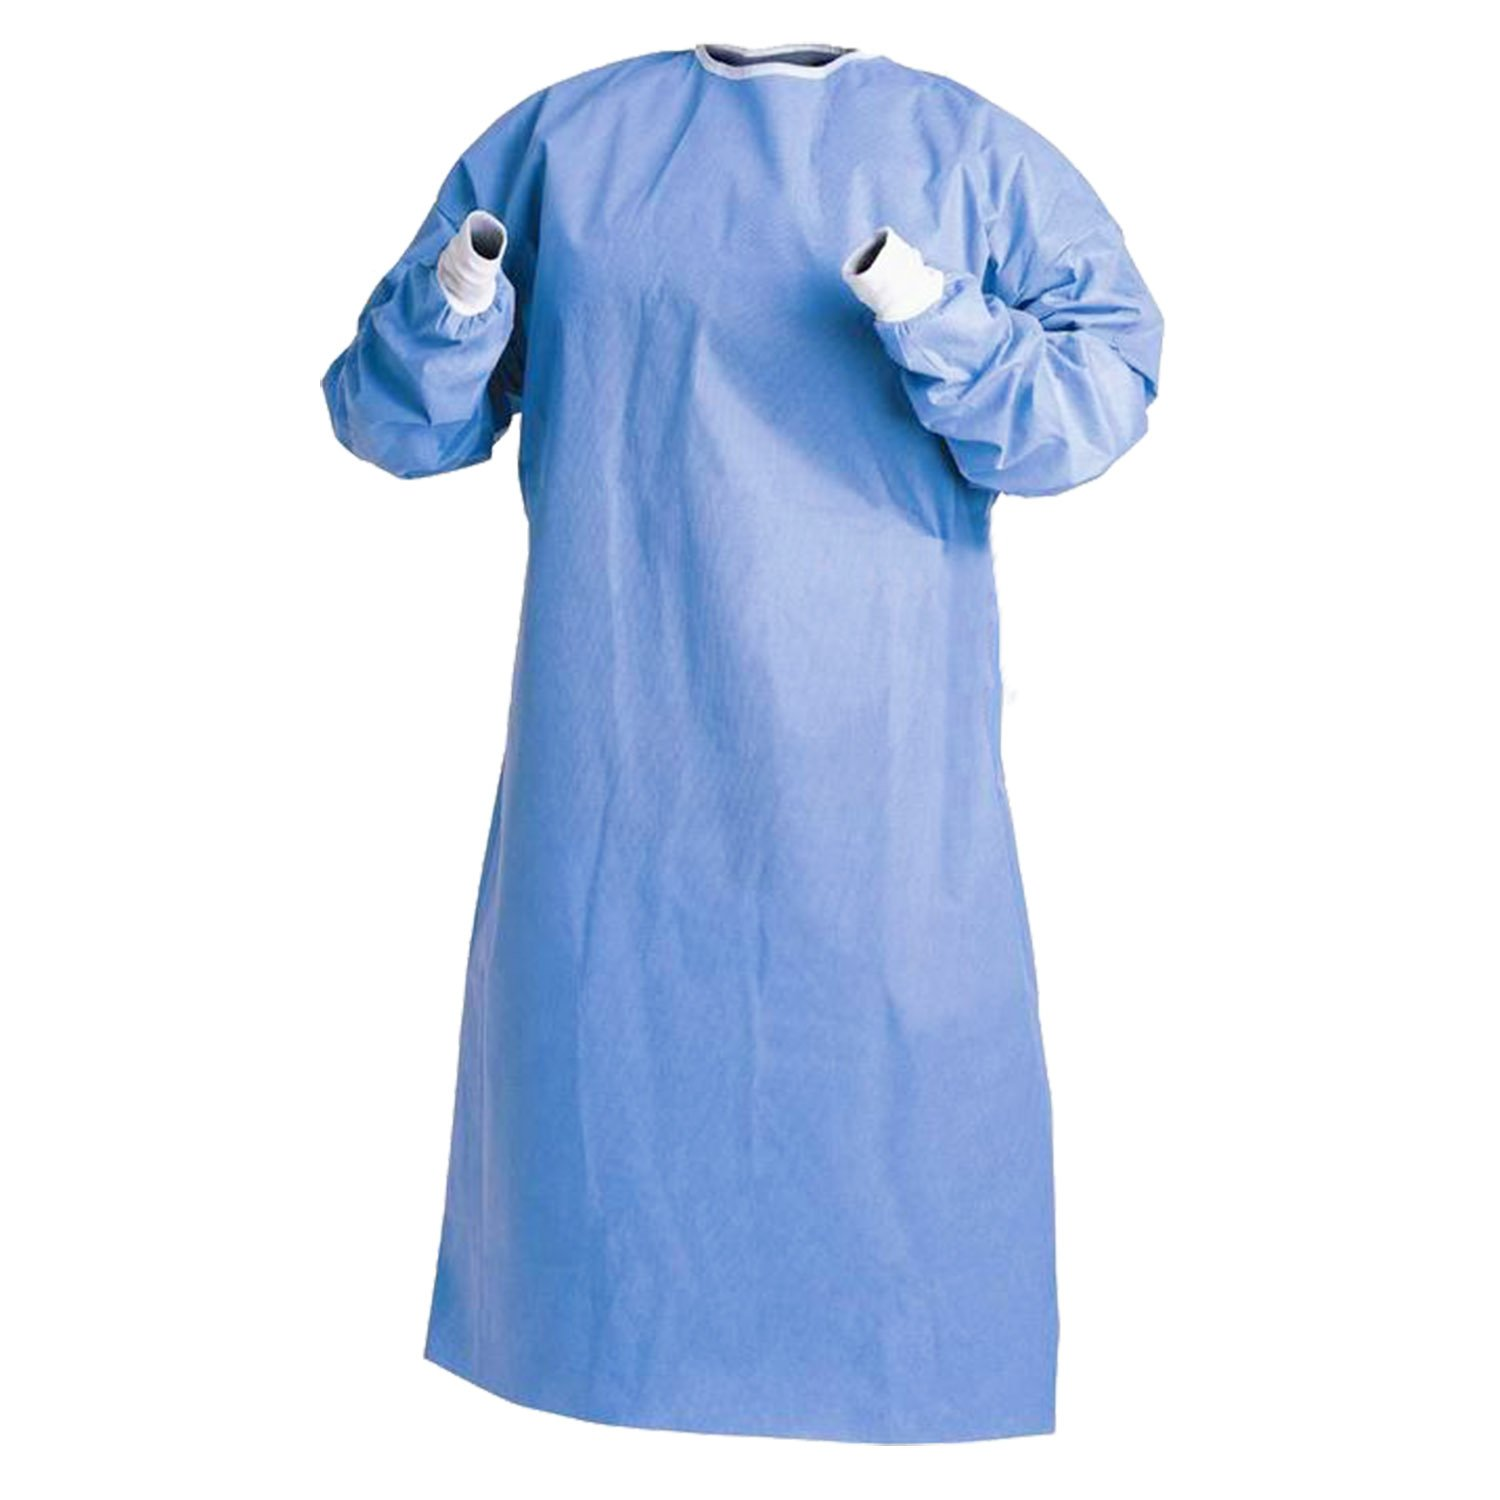 3M Disposable Surgical Gowns. Sterile Protective Over Garment. Pack ...